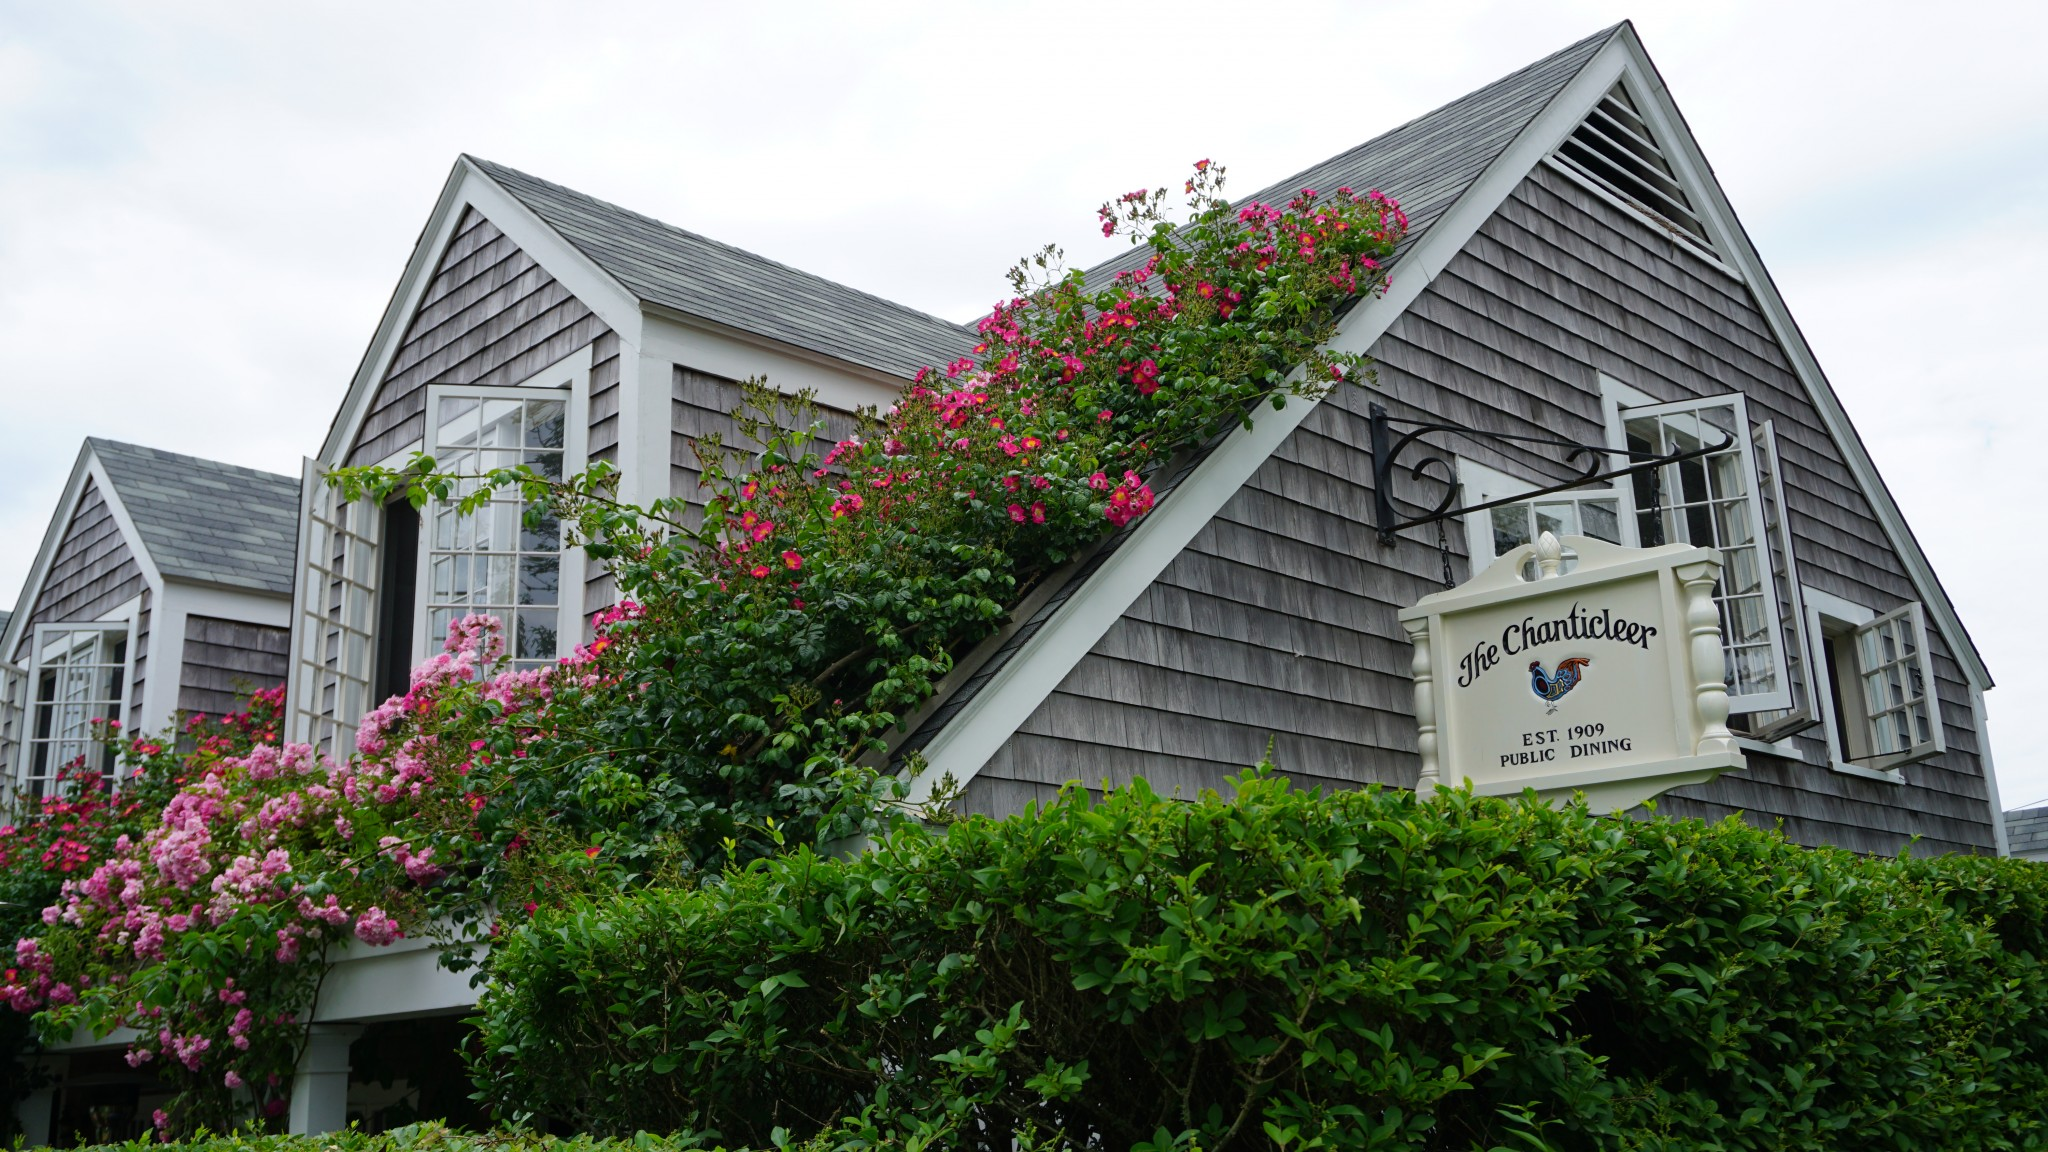 chanticleer sconset, siasconset, nantucket, bluff walk, the-alyst.com